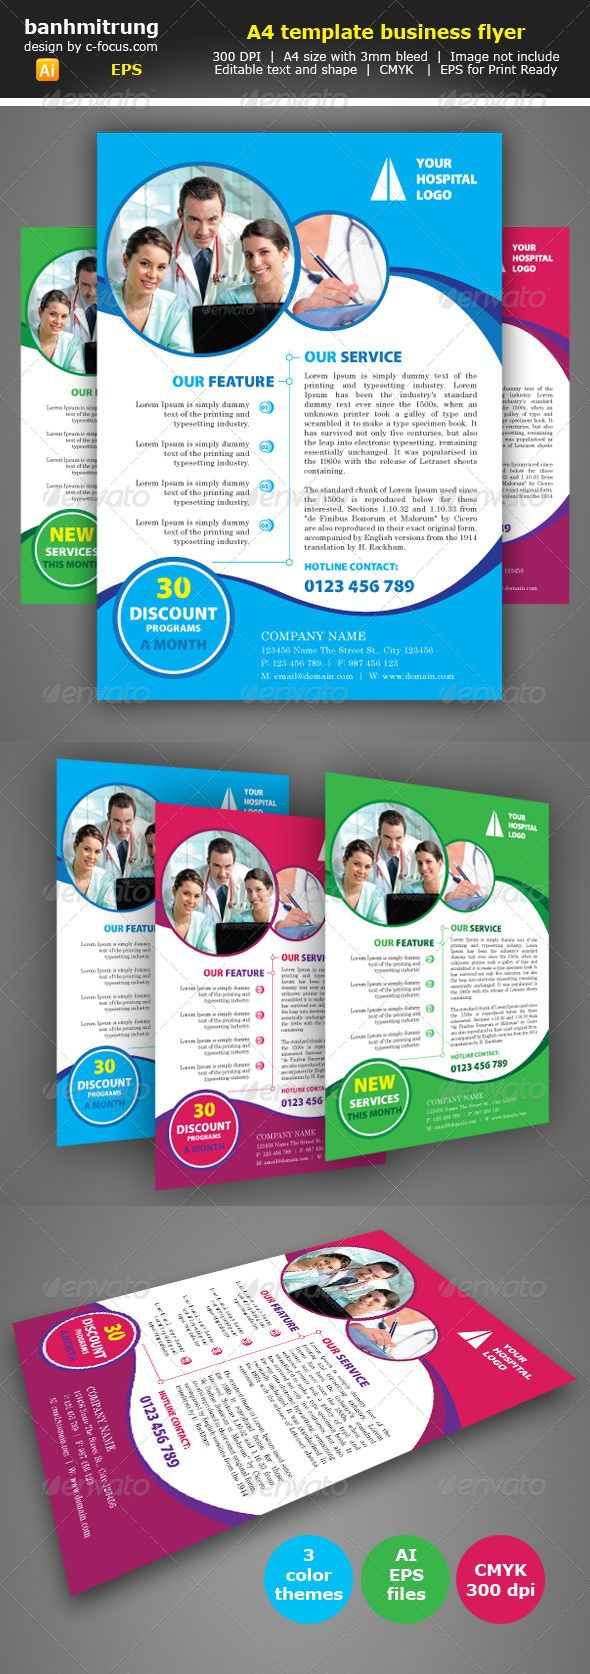 Hospital a4 flyer template flyer template a4 and template hospital a4 flyer template saigontimesfo